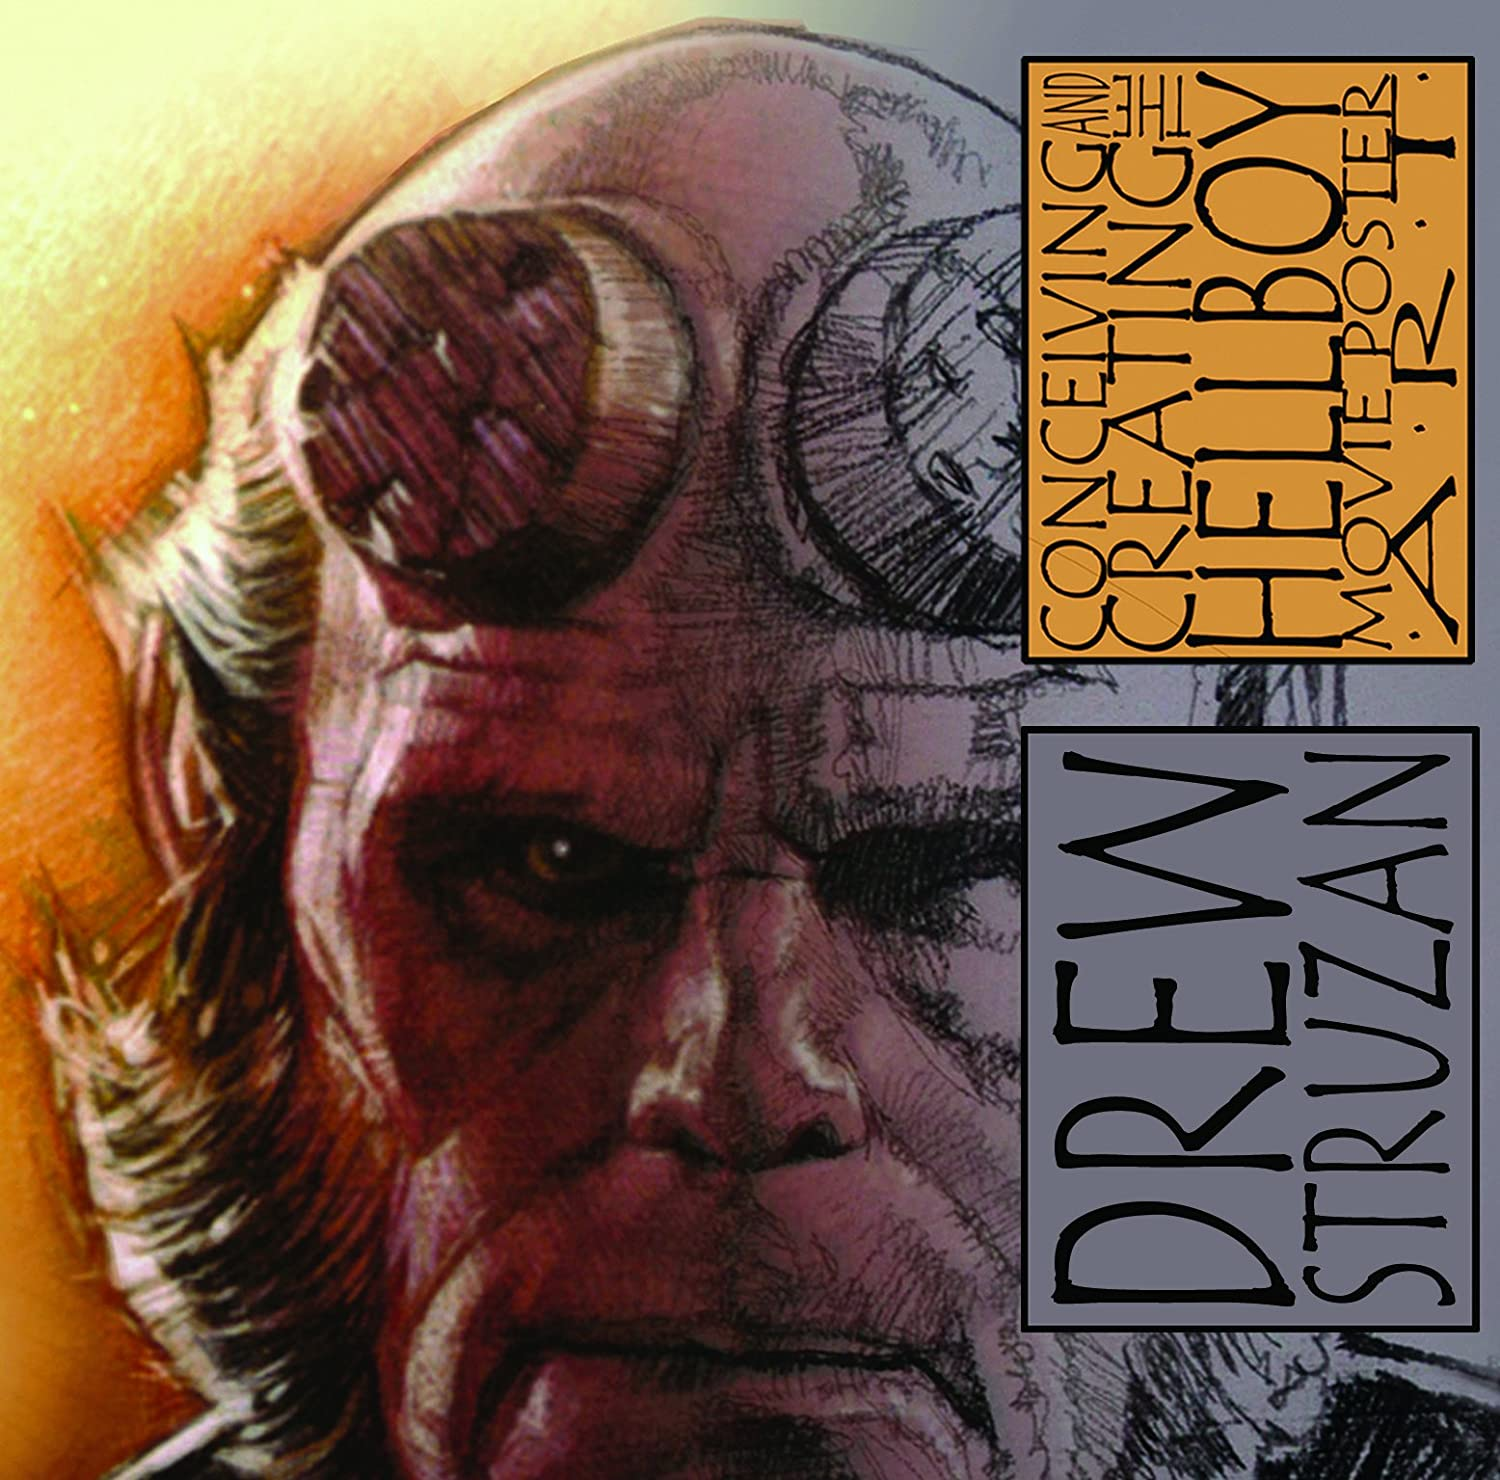 Drew Struzan Drawings Amazon.com Drew Struzan's